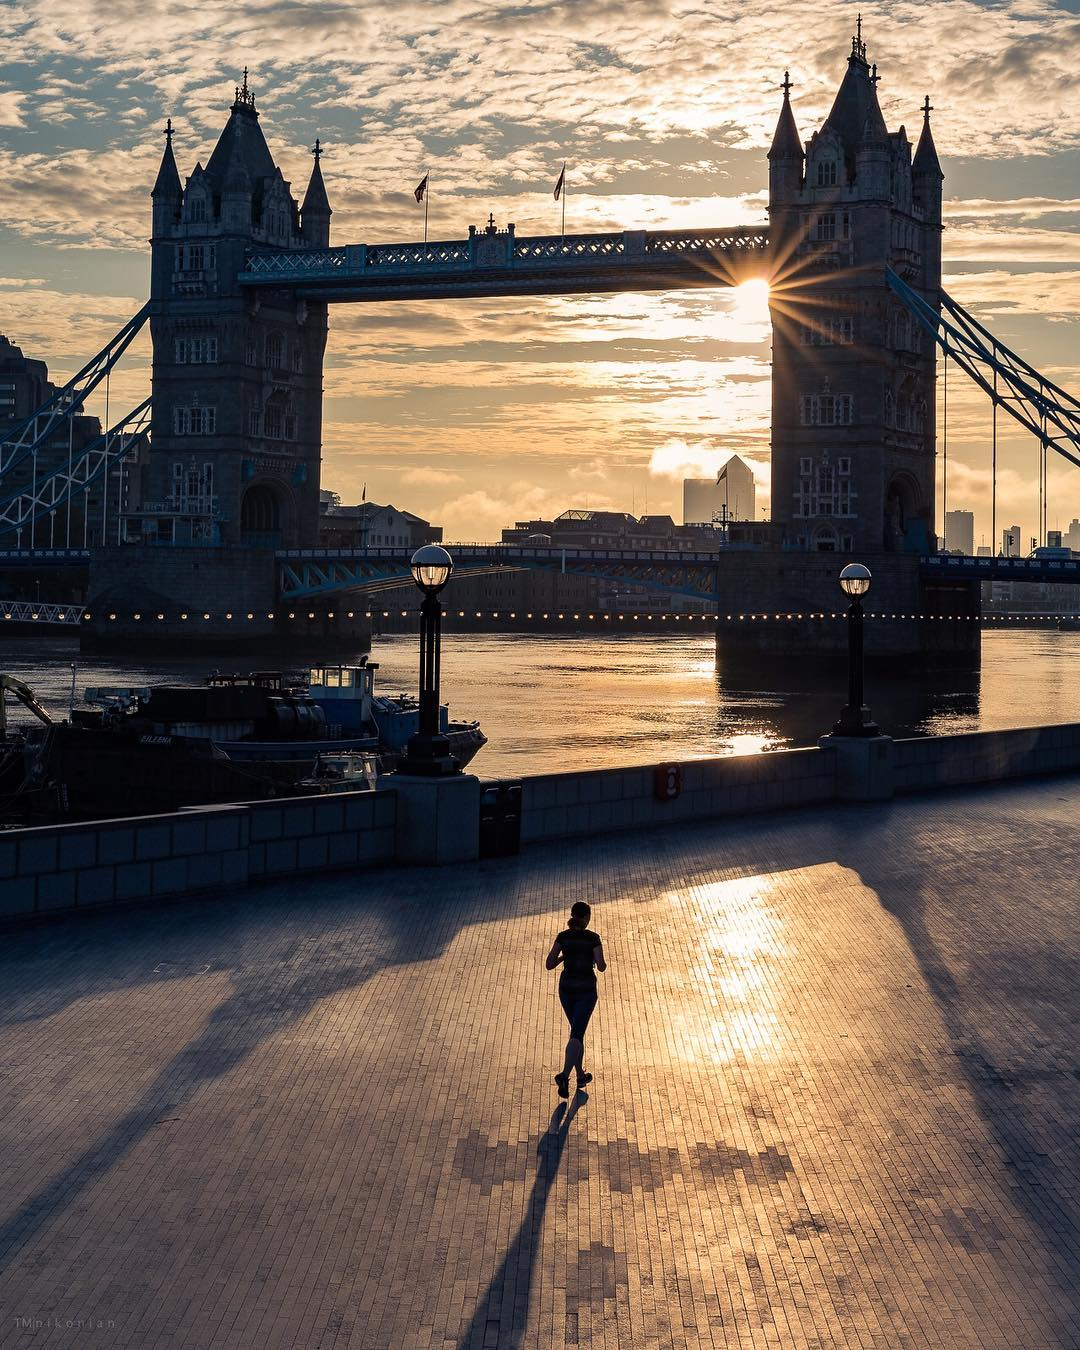 Tower Bridge sunset photo London.